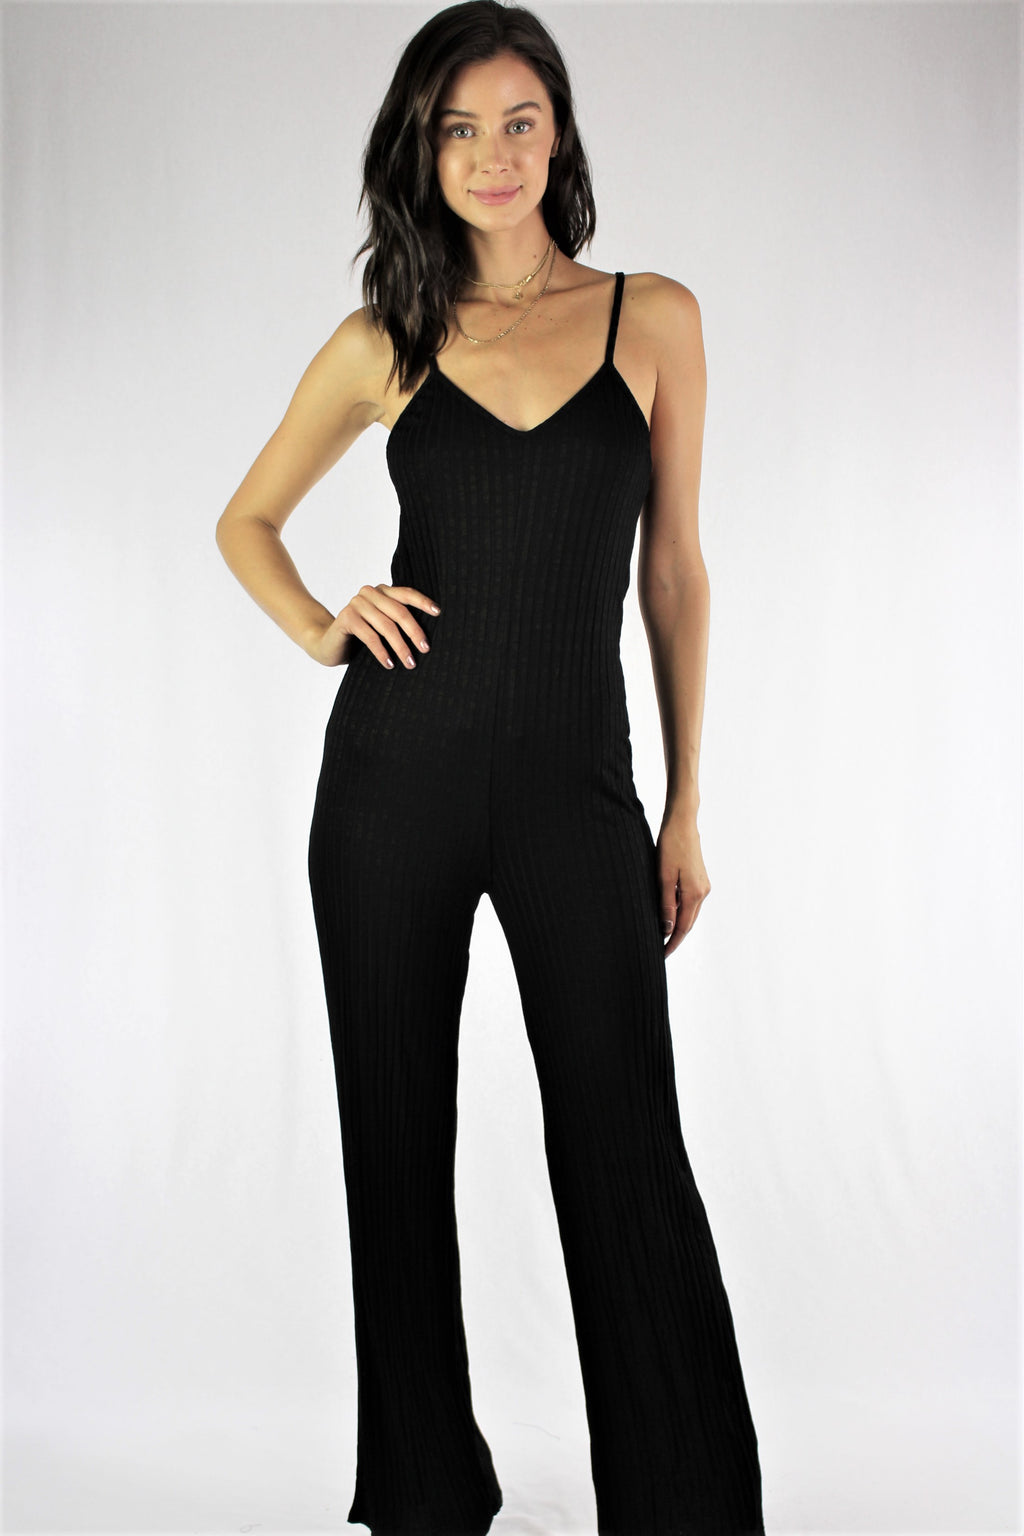 Women's Strappy Jumpsuit with Criss Cross Back